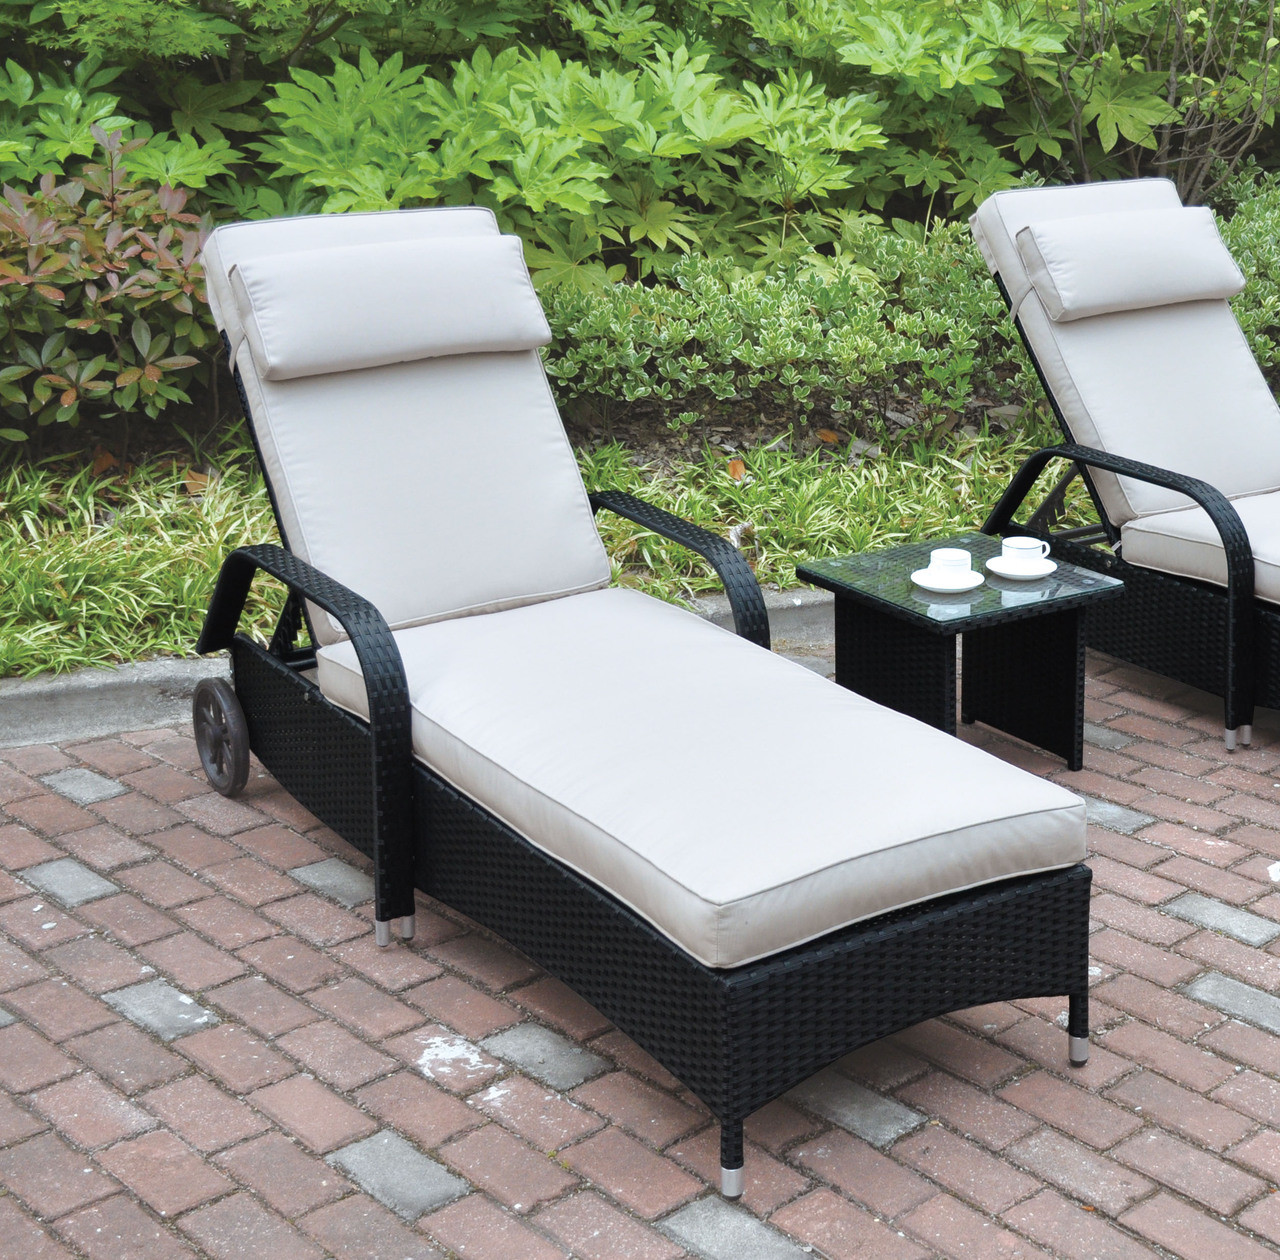 Adjustable Patio Lounger Chair By Poundex